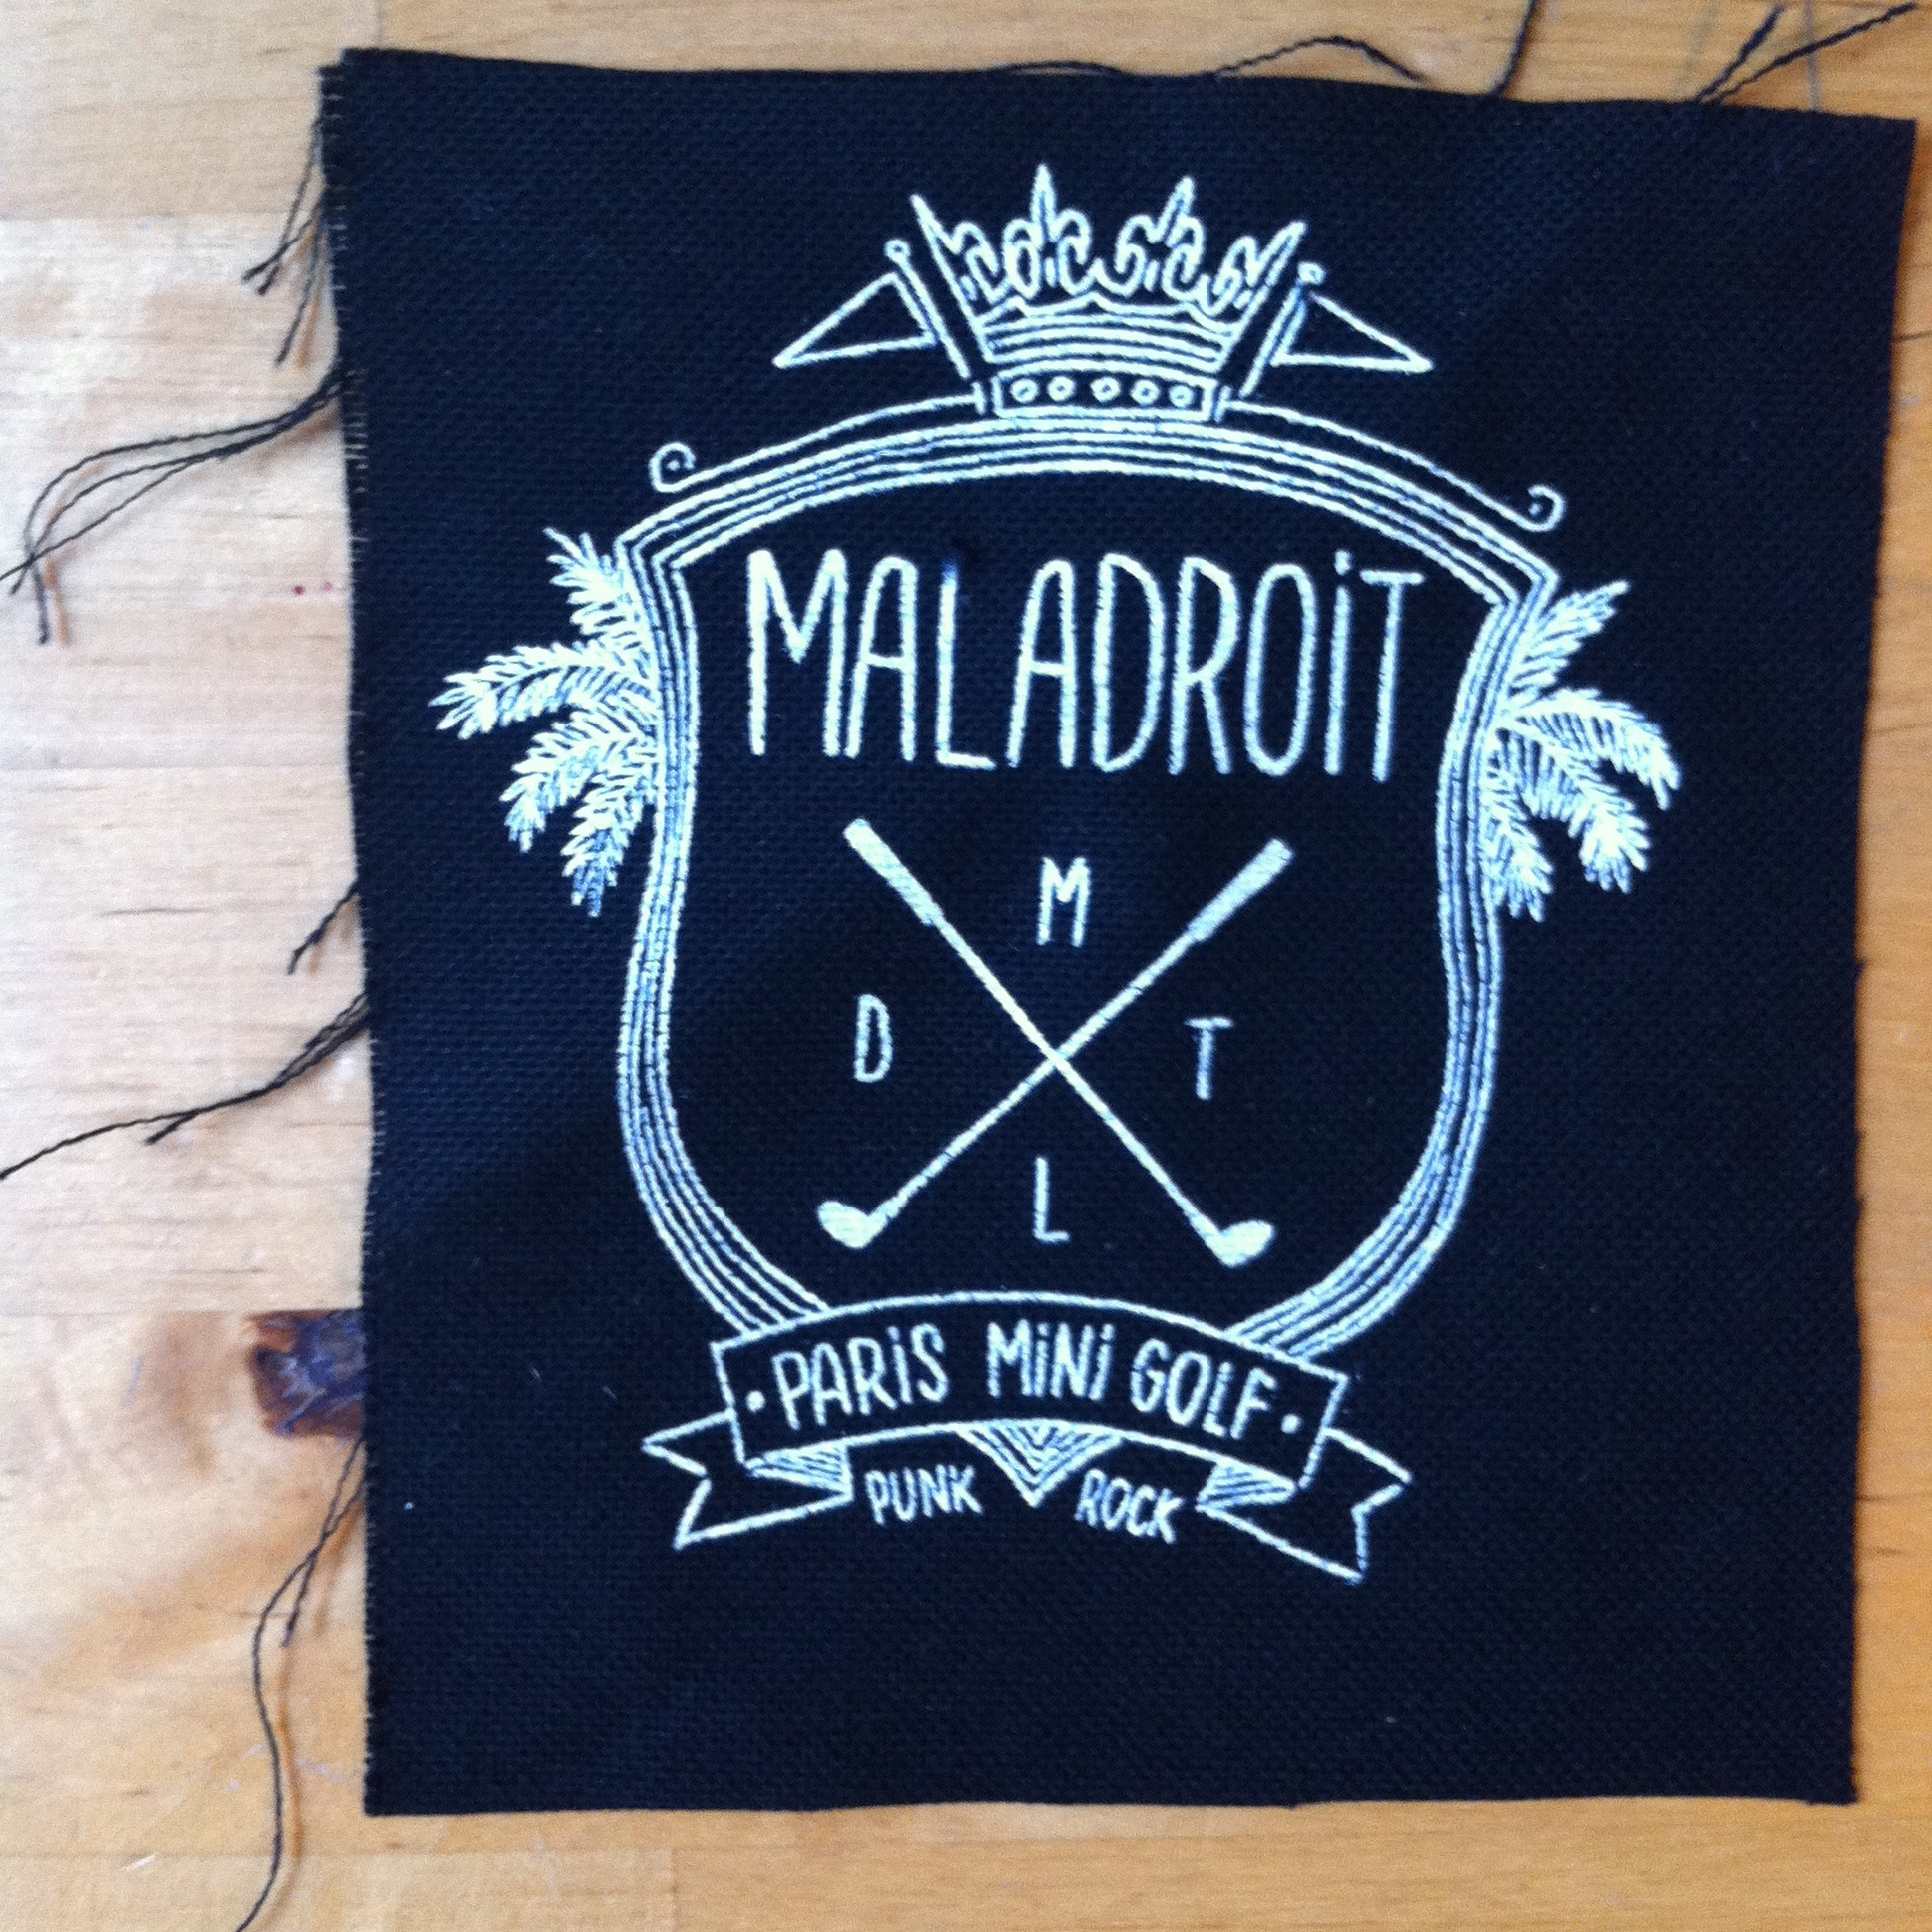 Maladroit - patch minigolf